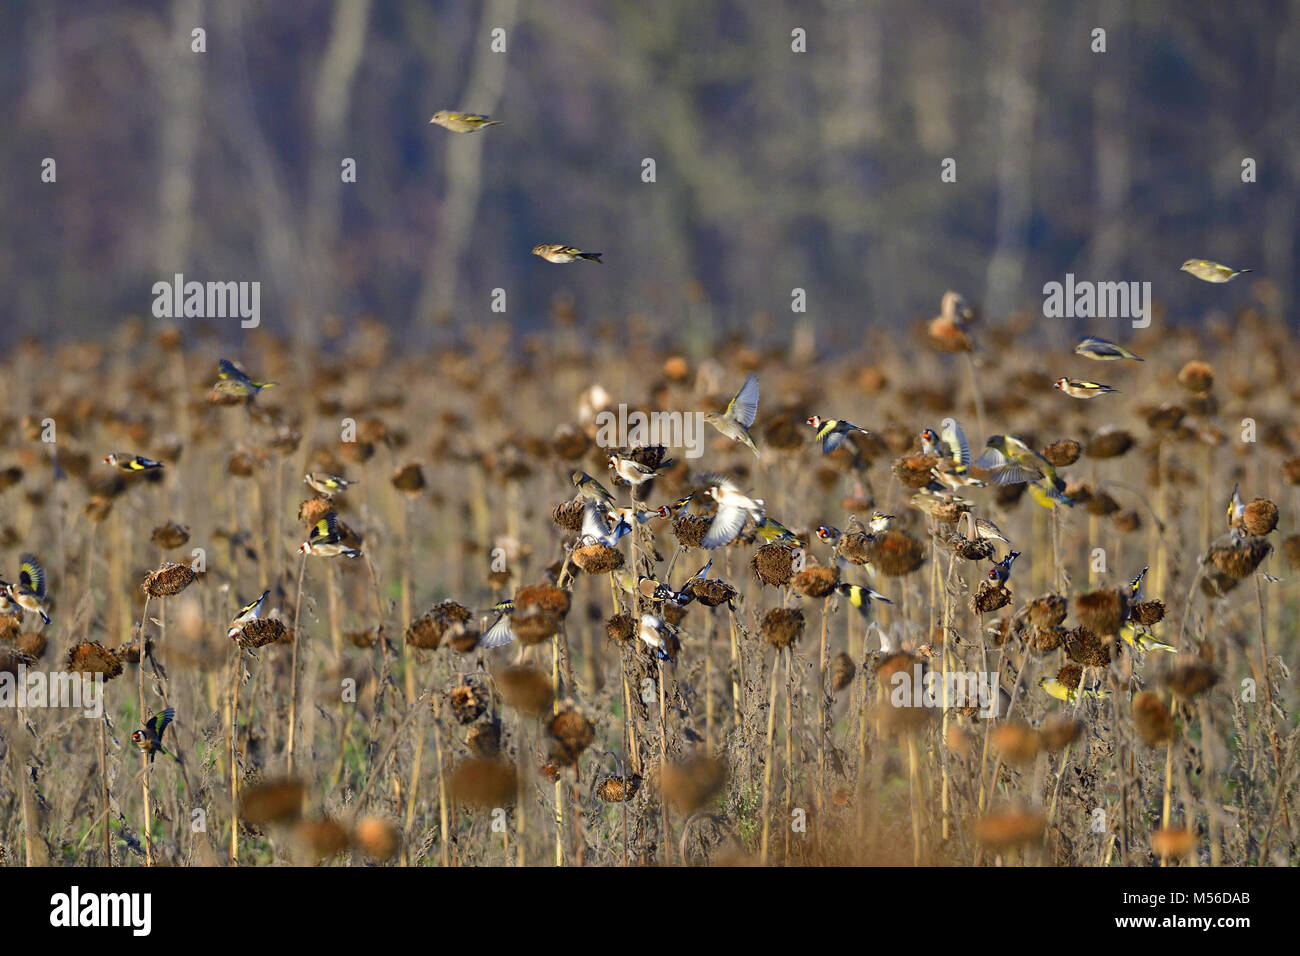 Finches swarm - Stock Image